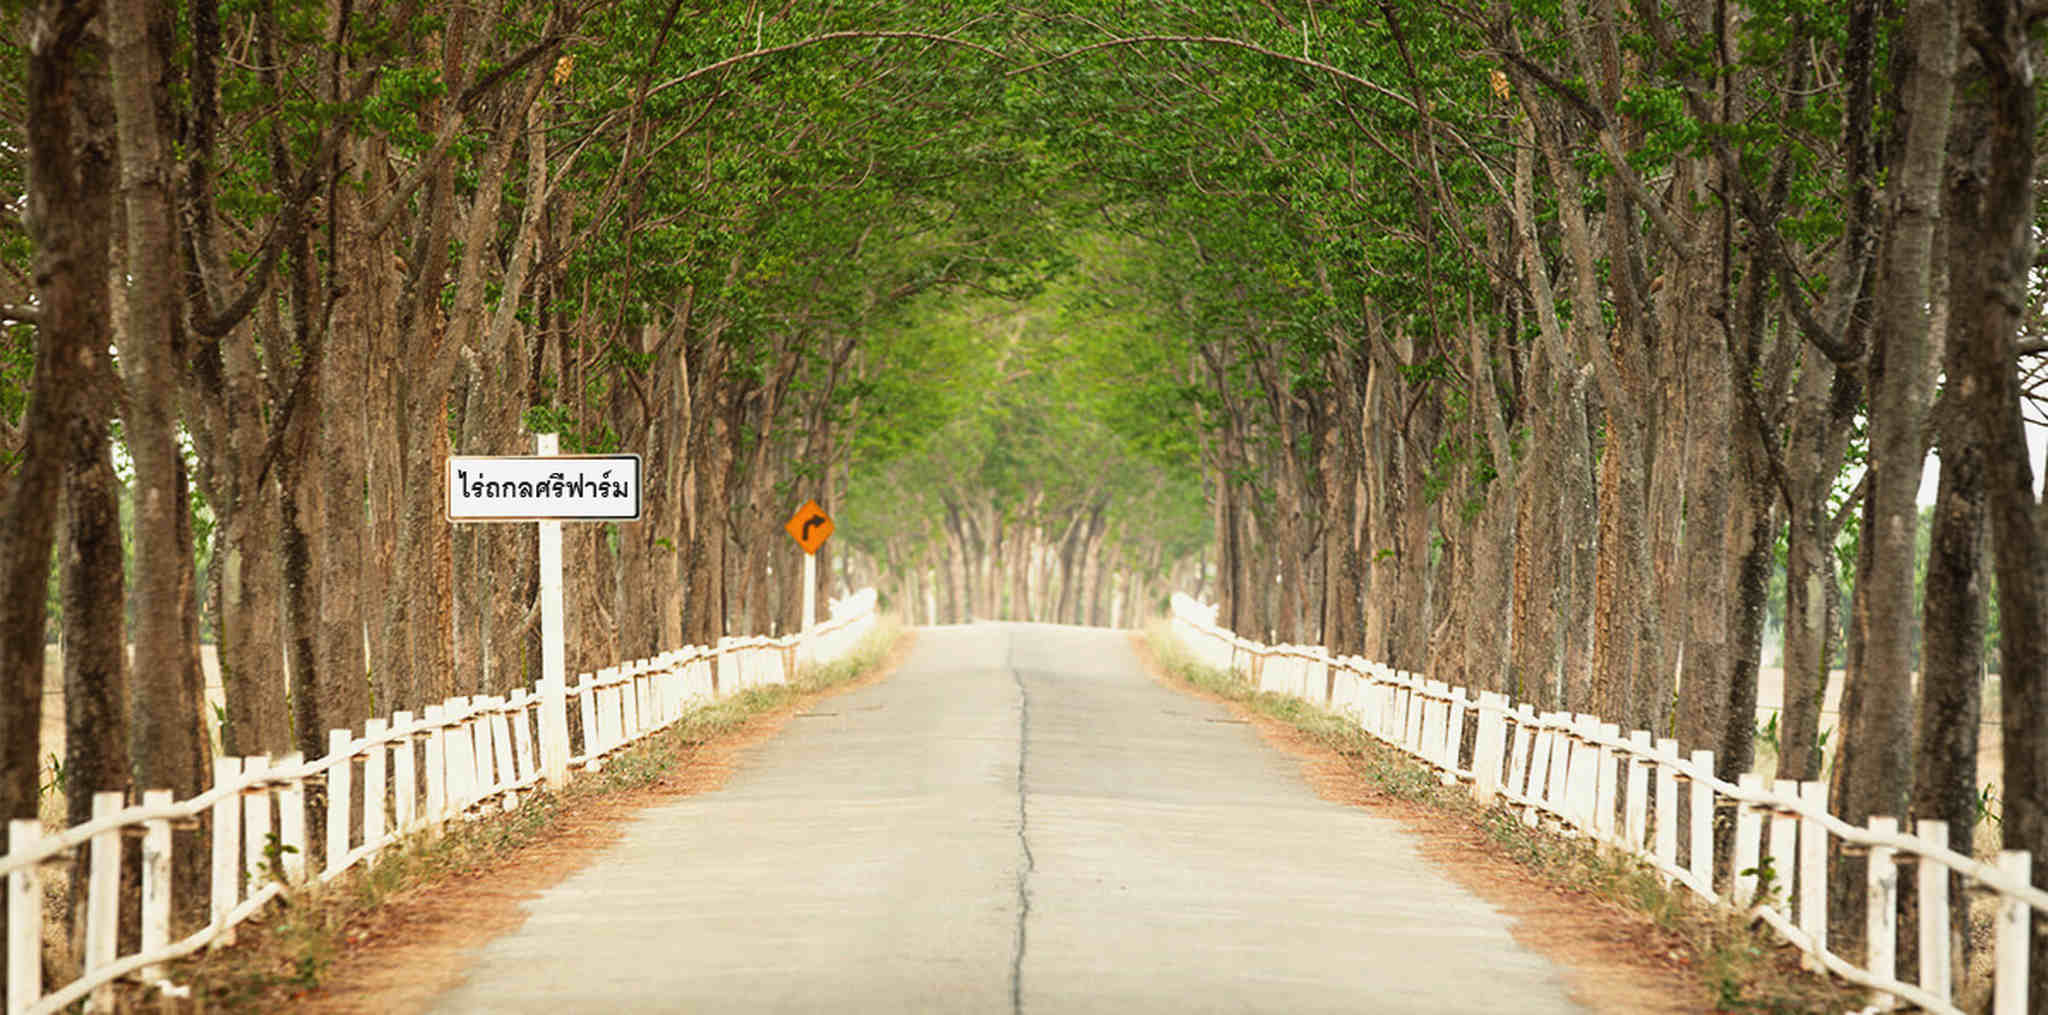 Tree, Thoroughfare, Lane, Road, Natural landscape, Road surface, Path, Infrastructure, Trail, Woody plant, Walkway, Nonbuilding structure, Plant, ถกลศรีฟาร์ม, ถกลศรีฟาร์ม เพชรบูรณ์